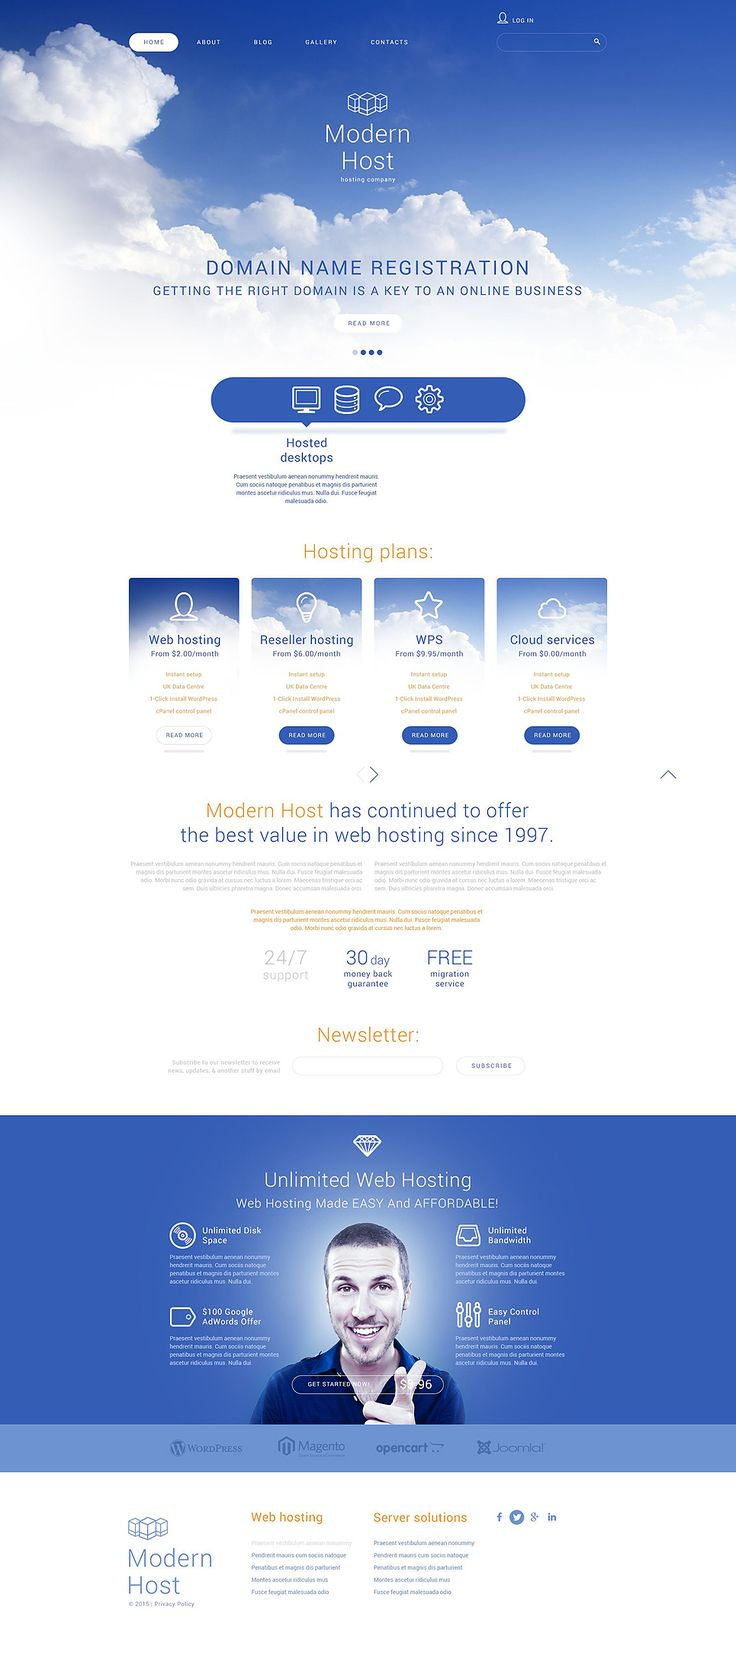 Unlimited Web Hosting Joomla Template http://www.templatemonster.com/joomla-templates/55596.html?utm_source=pinterest&utm_medium=timeline&utm_campaign=55596